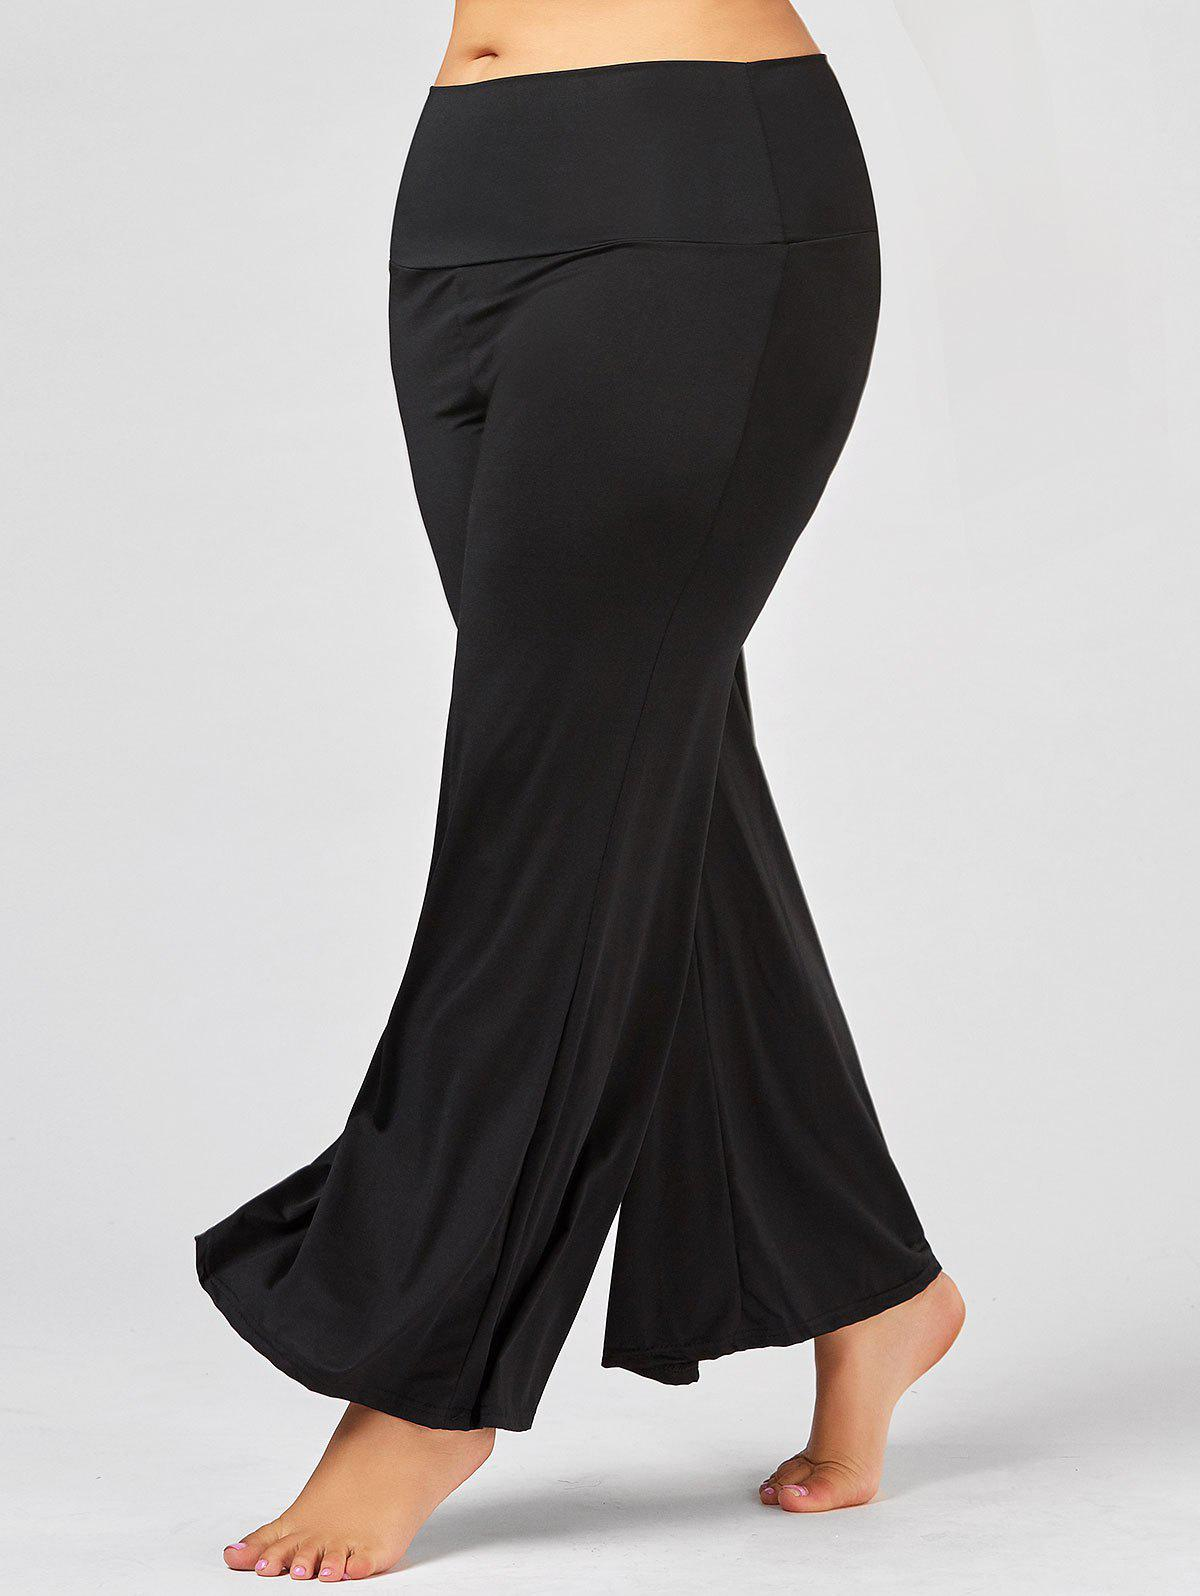 Shop Plus Size Maxi High Waisted Palazzo Pants